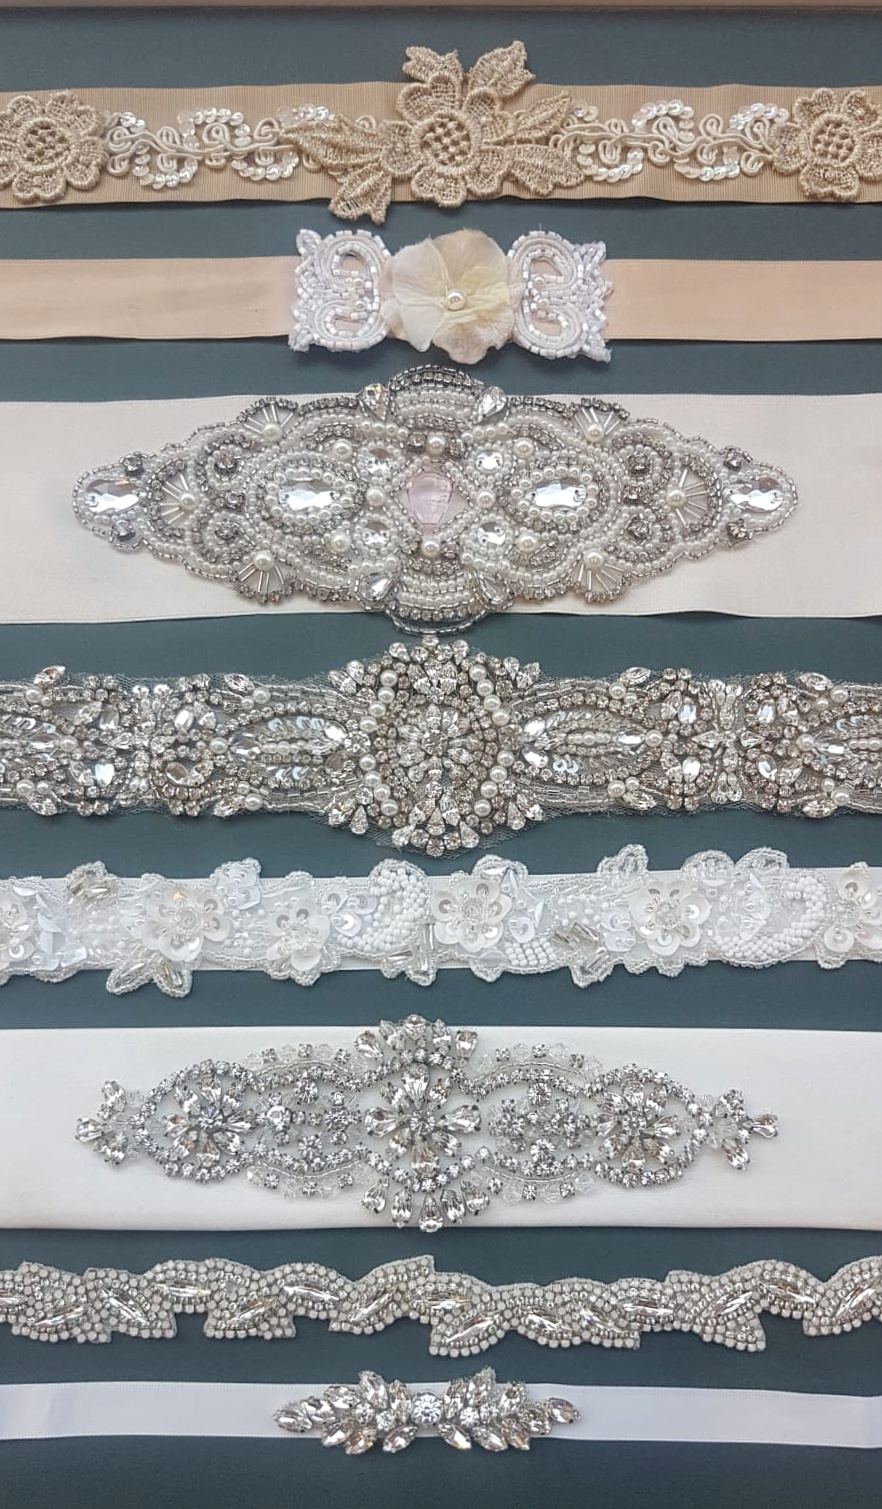 Sashes   What better way of adding a touch of sparkle or colour than by adding a sash. It will define your waist and add extra interest to your dress. Our collection of new and bespoke sashes offer so much choice. We'll help you pick the best style to suit your dress, whether it's simple, fun, elaborate or chic. If we don't have what you're looking for, we can create one just for you. A fabulous option if you are looking to work in your bridal party colours!